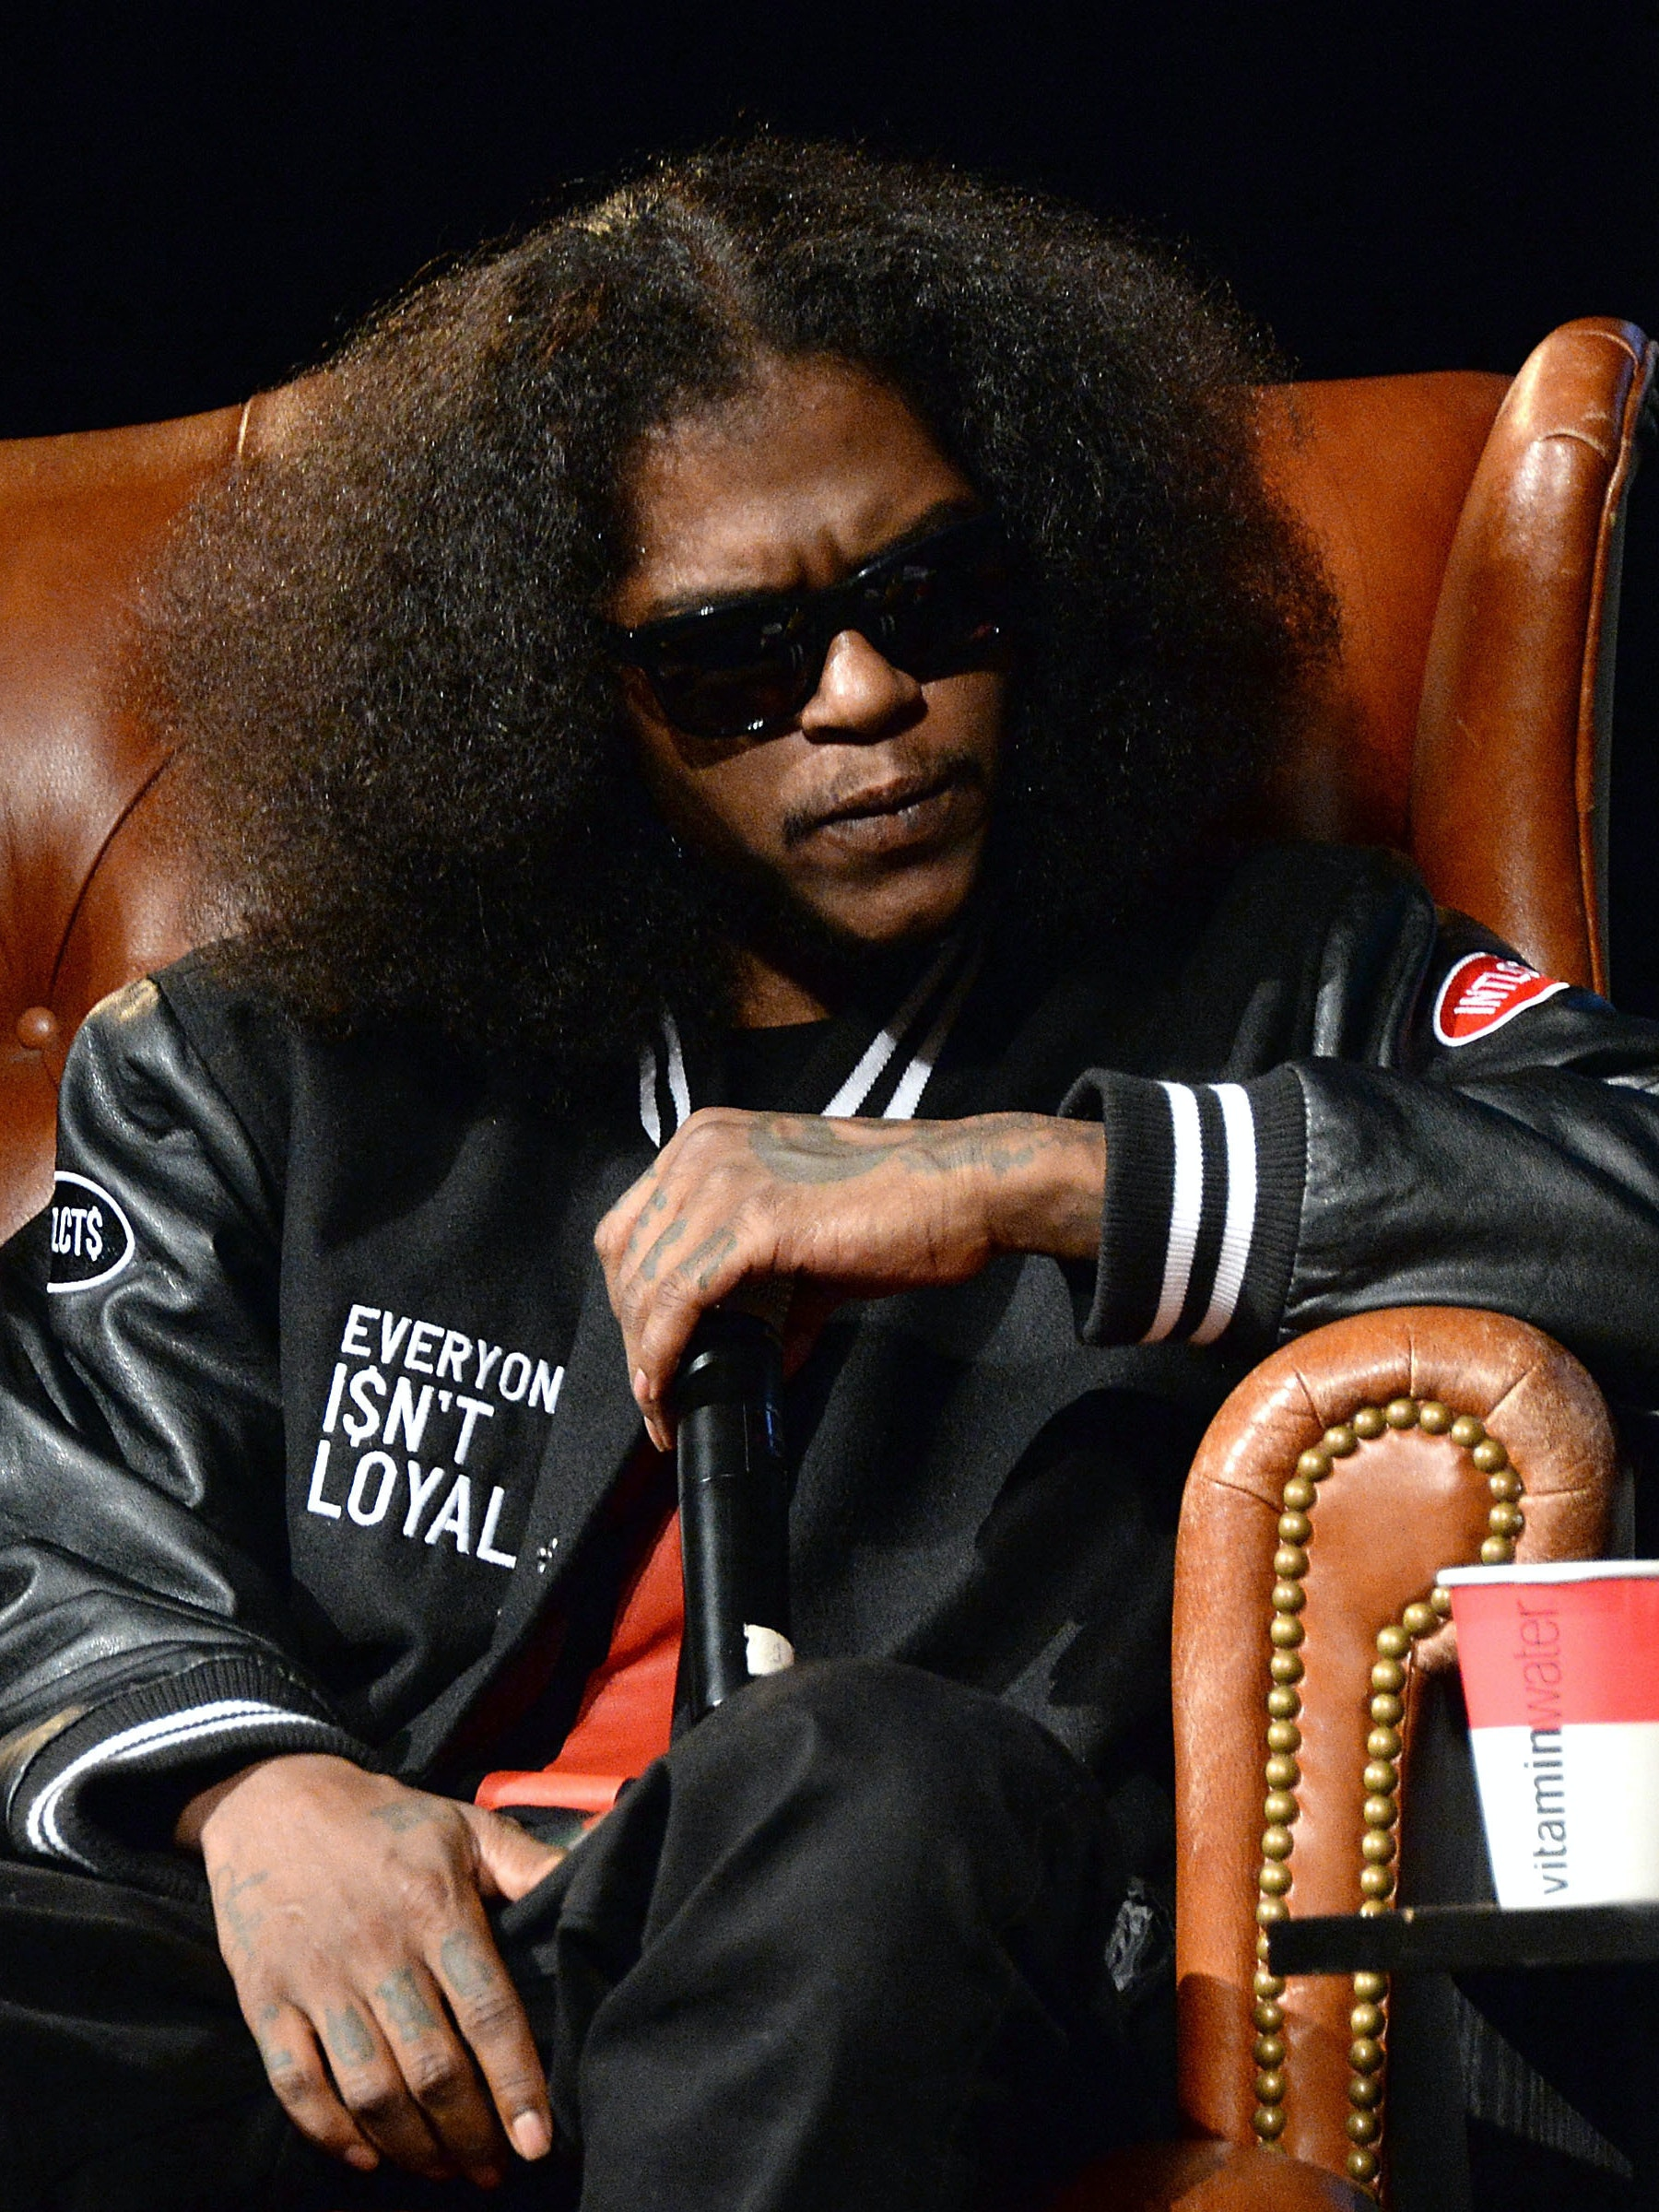 NEW YORK, NY - SEPTEMBER 16:  Rapper Ab-Soul speaks at Elliott Wilson hosts CRWN with Ab-Soul for WatchLOUD.com, presented by vitaminwater at the SVA Theater on September 16, 2014 in New York City.  (Photo by Ben Gabbe/Getty Images for Electus Digital)